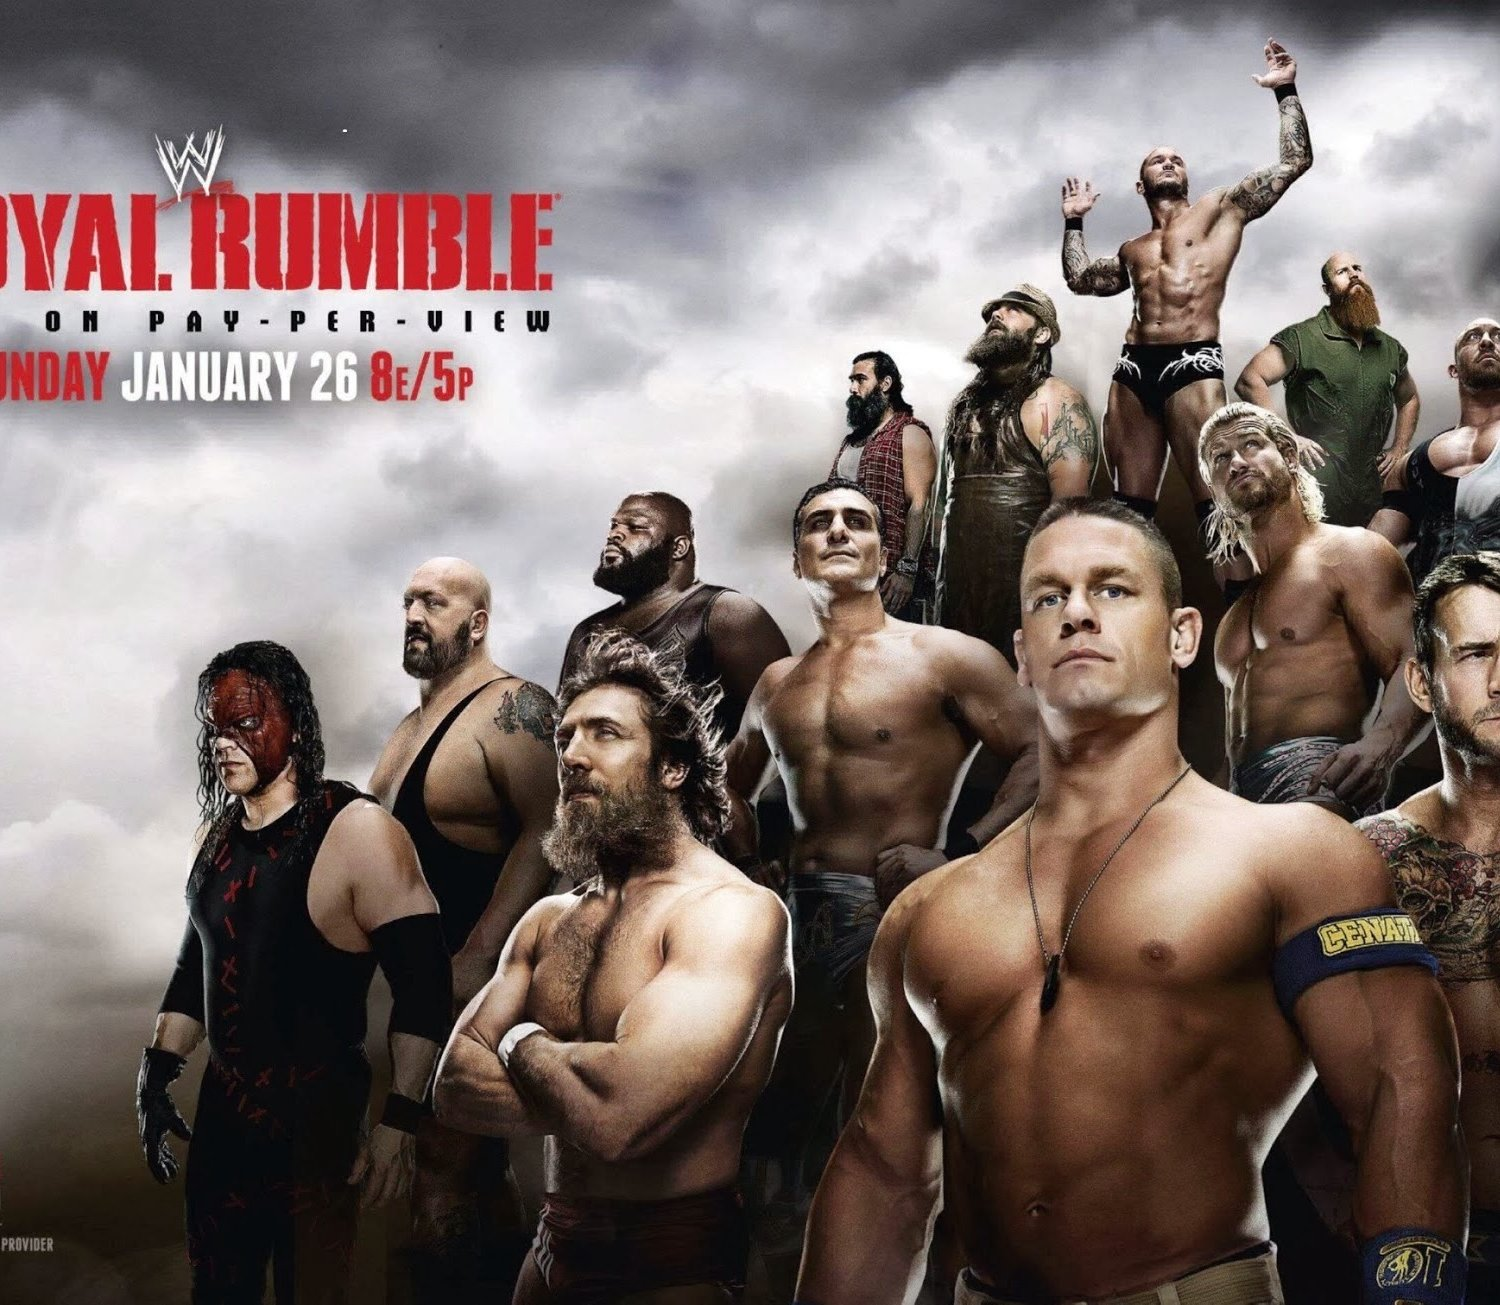 The John Report Wwe Royal Rumble 2014 Preview | Auto